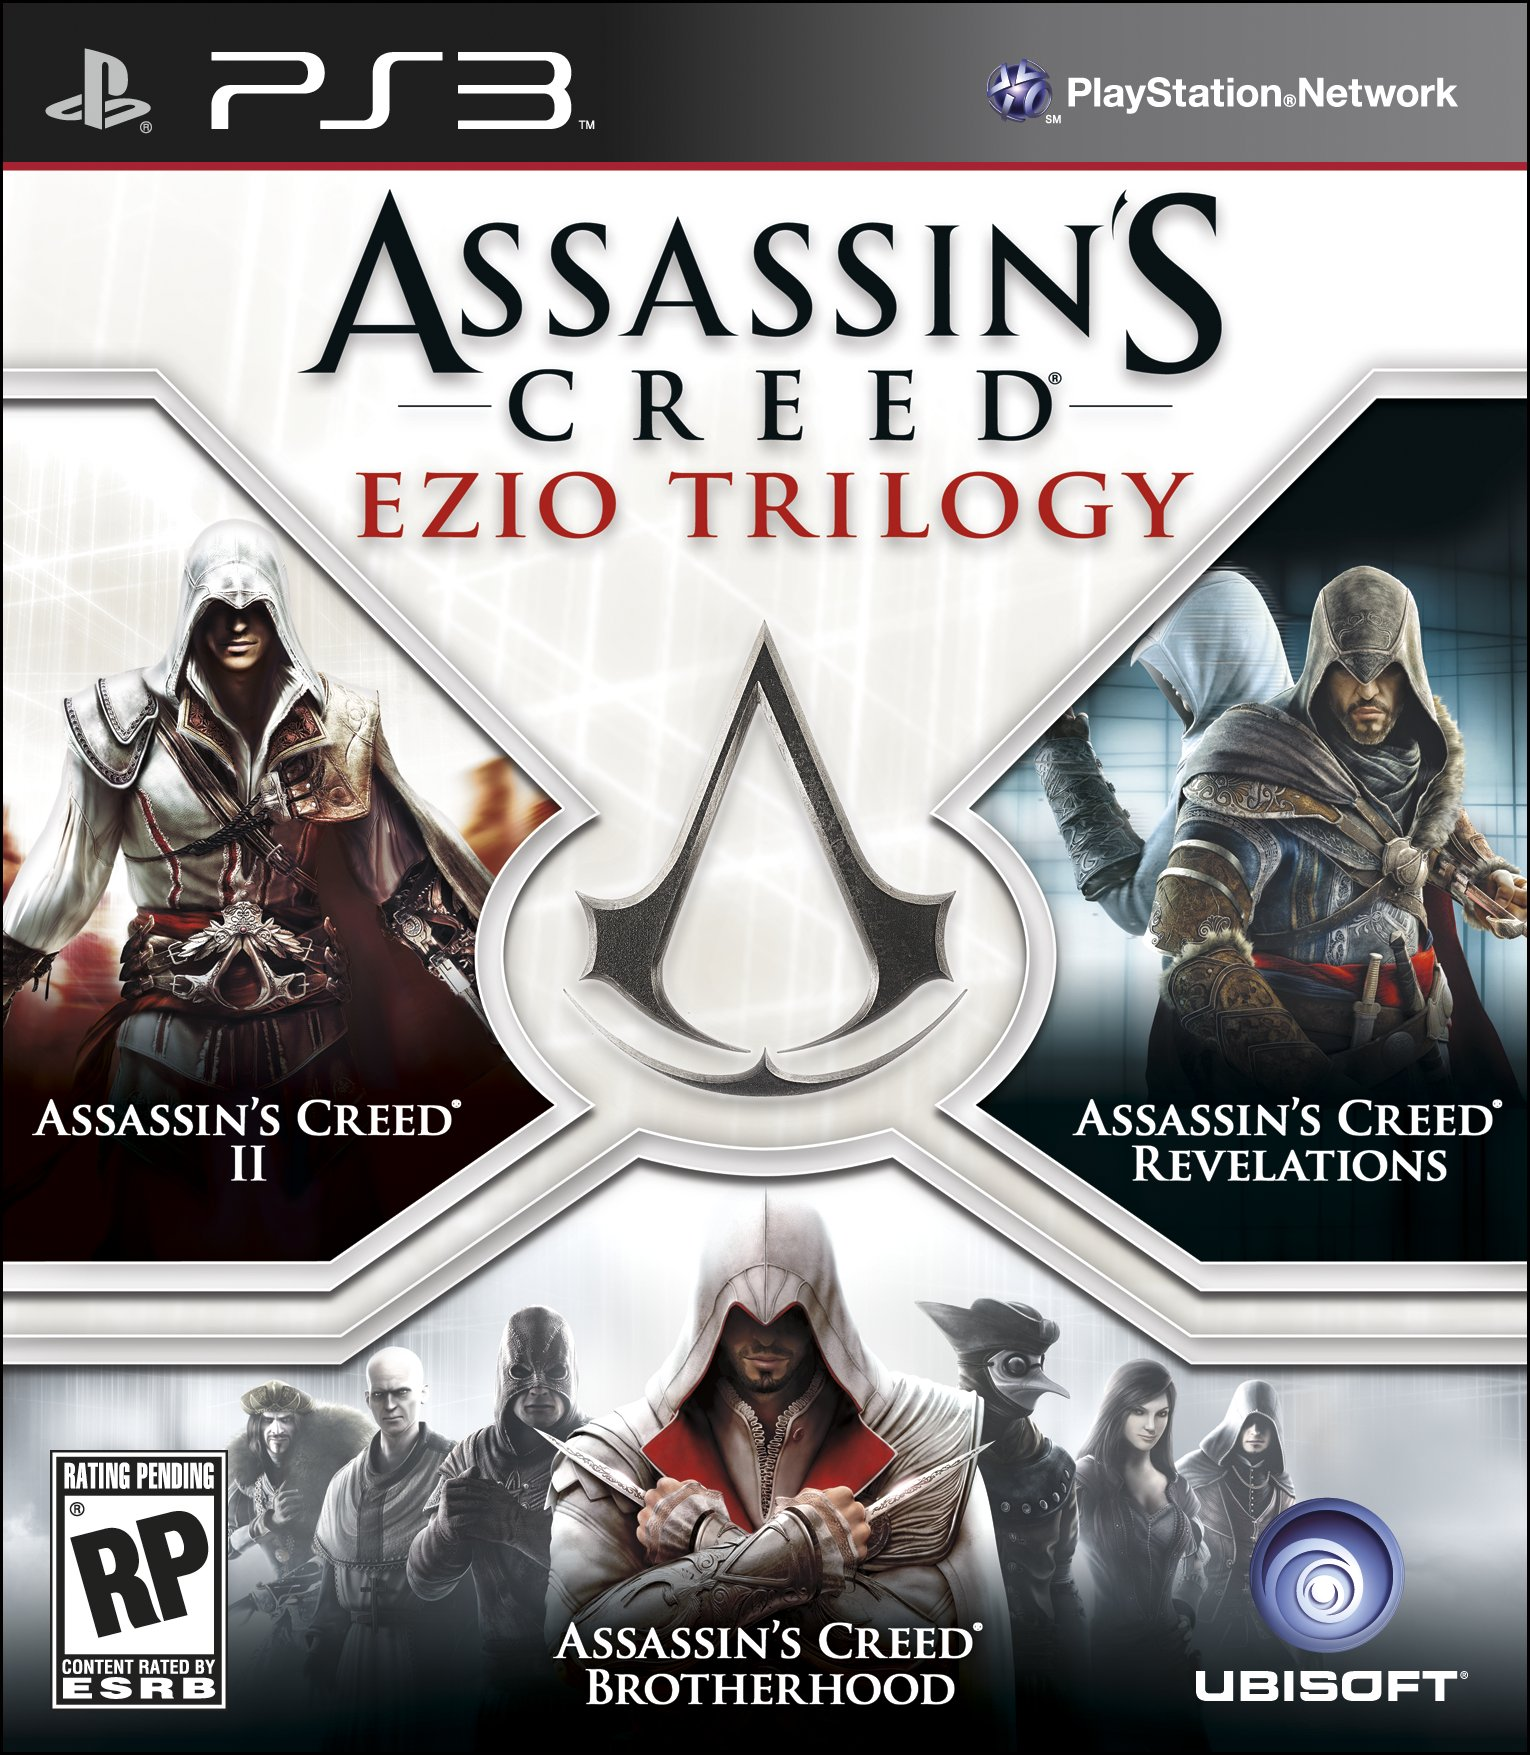 assassins creed movie hd torrent